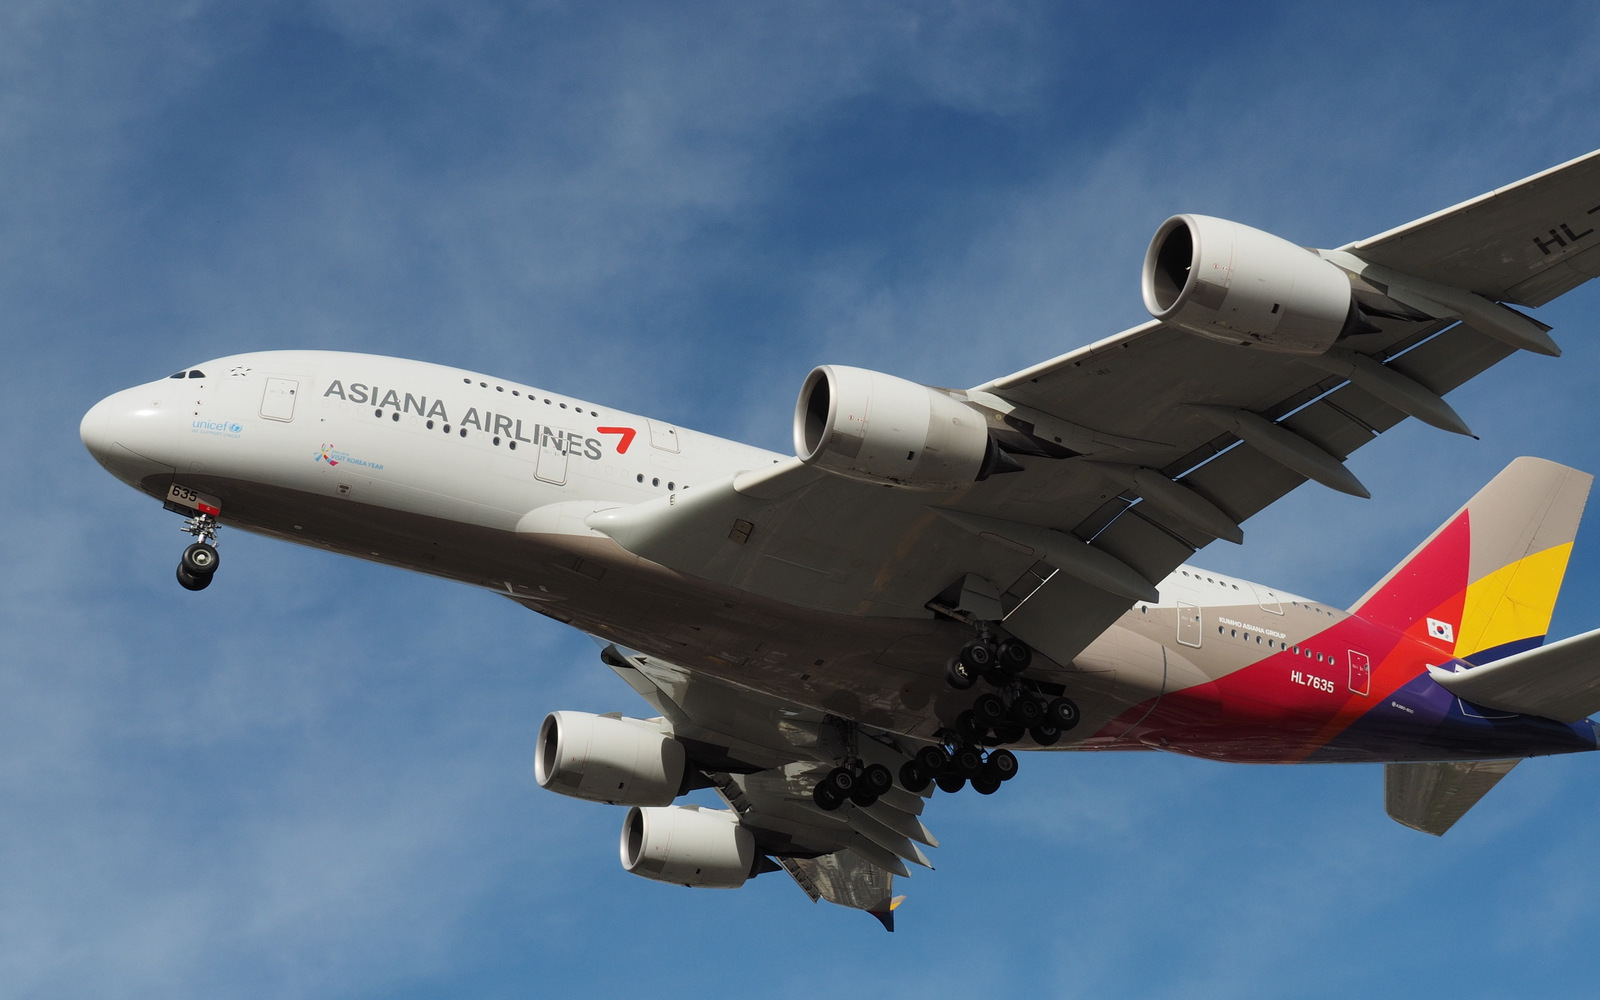 An Asiana Airlines A380 on short final at LAX.